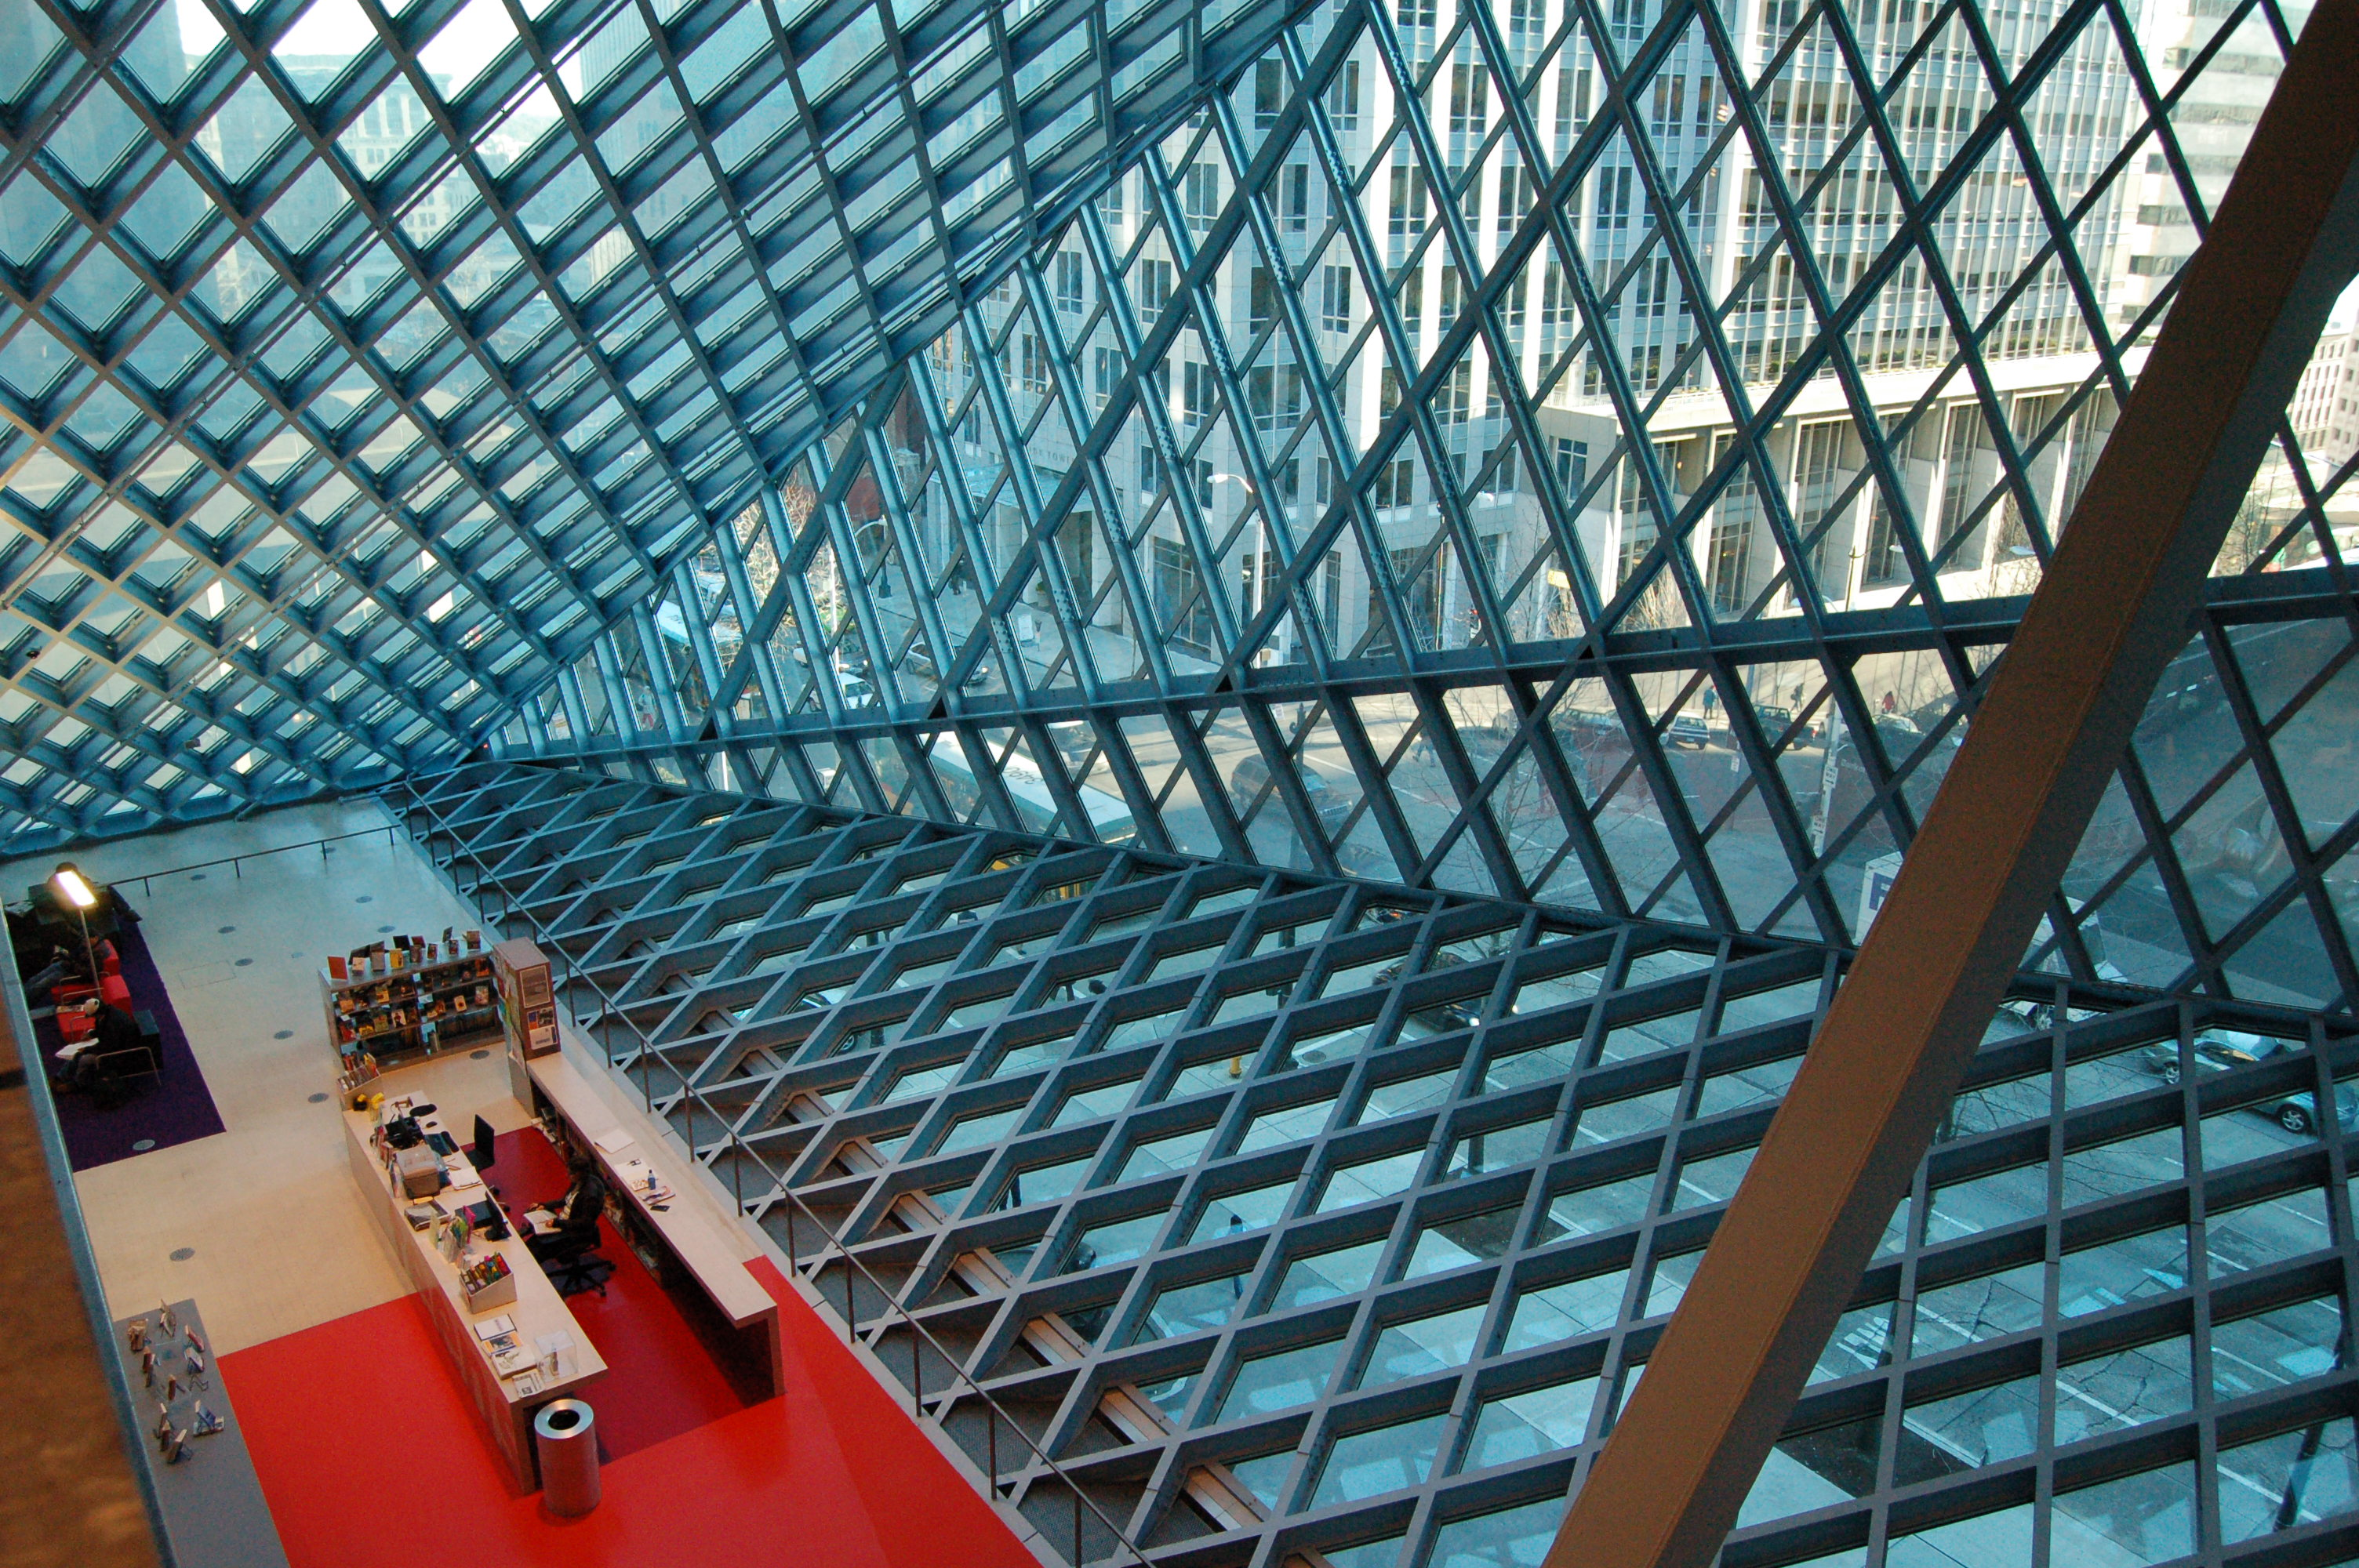 Seattle Public Library Interior - Photo Gallery: www.majordojo.com/photos/2006/02/seattle-public-library-interio.php